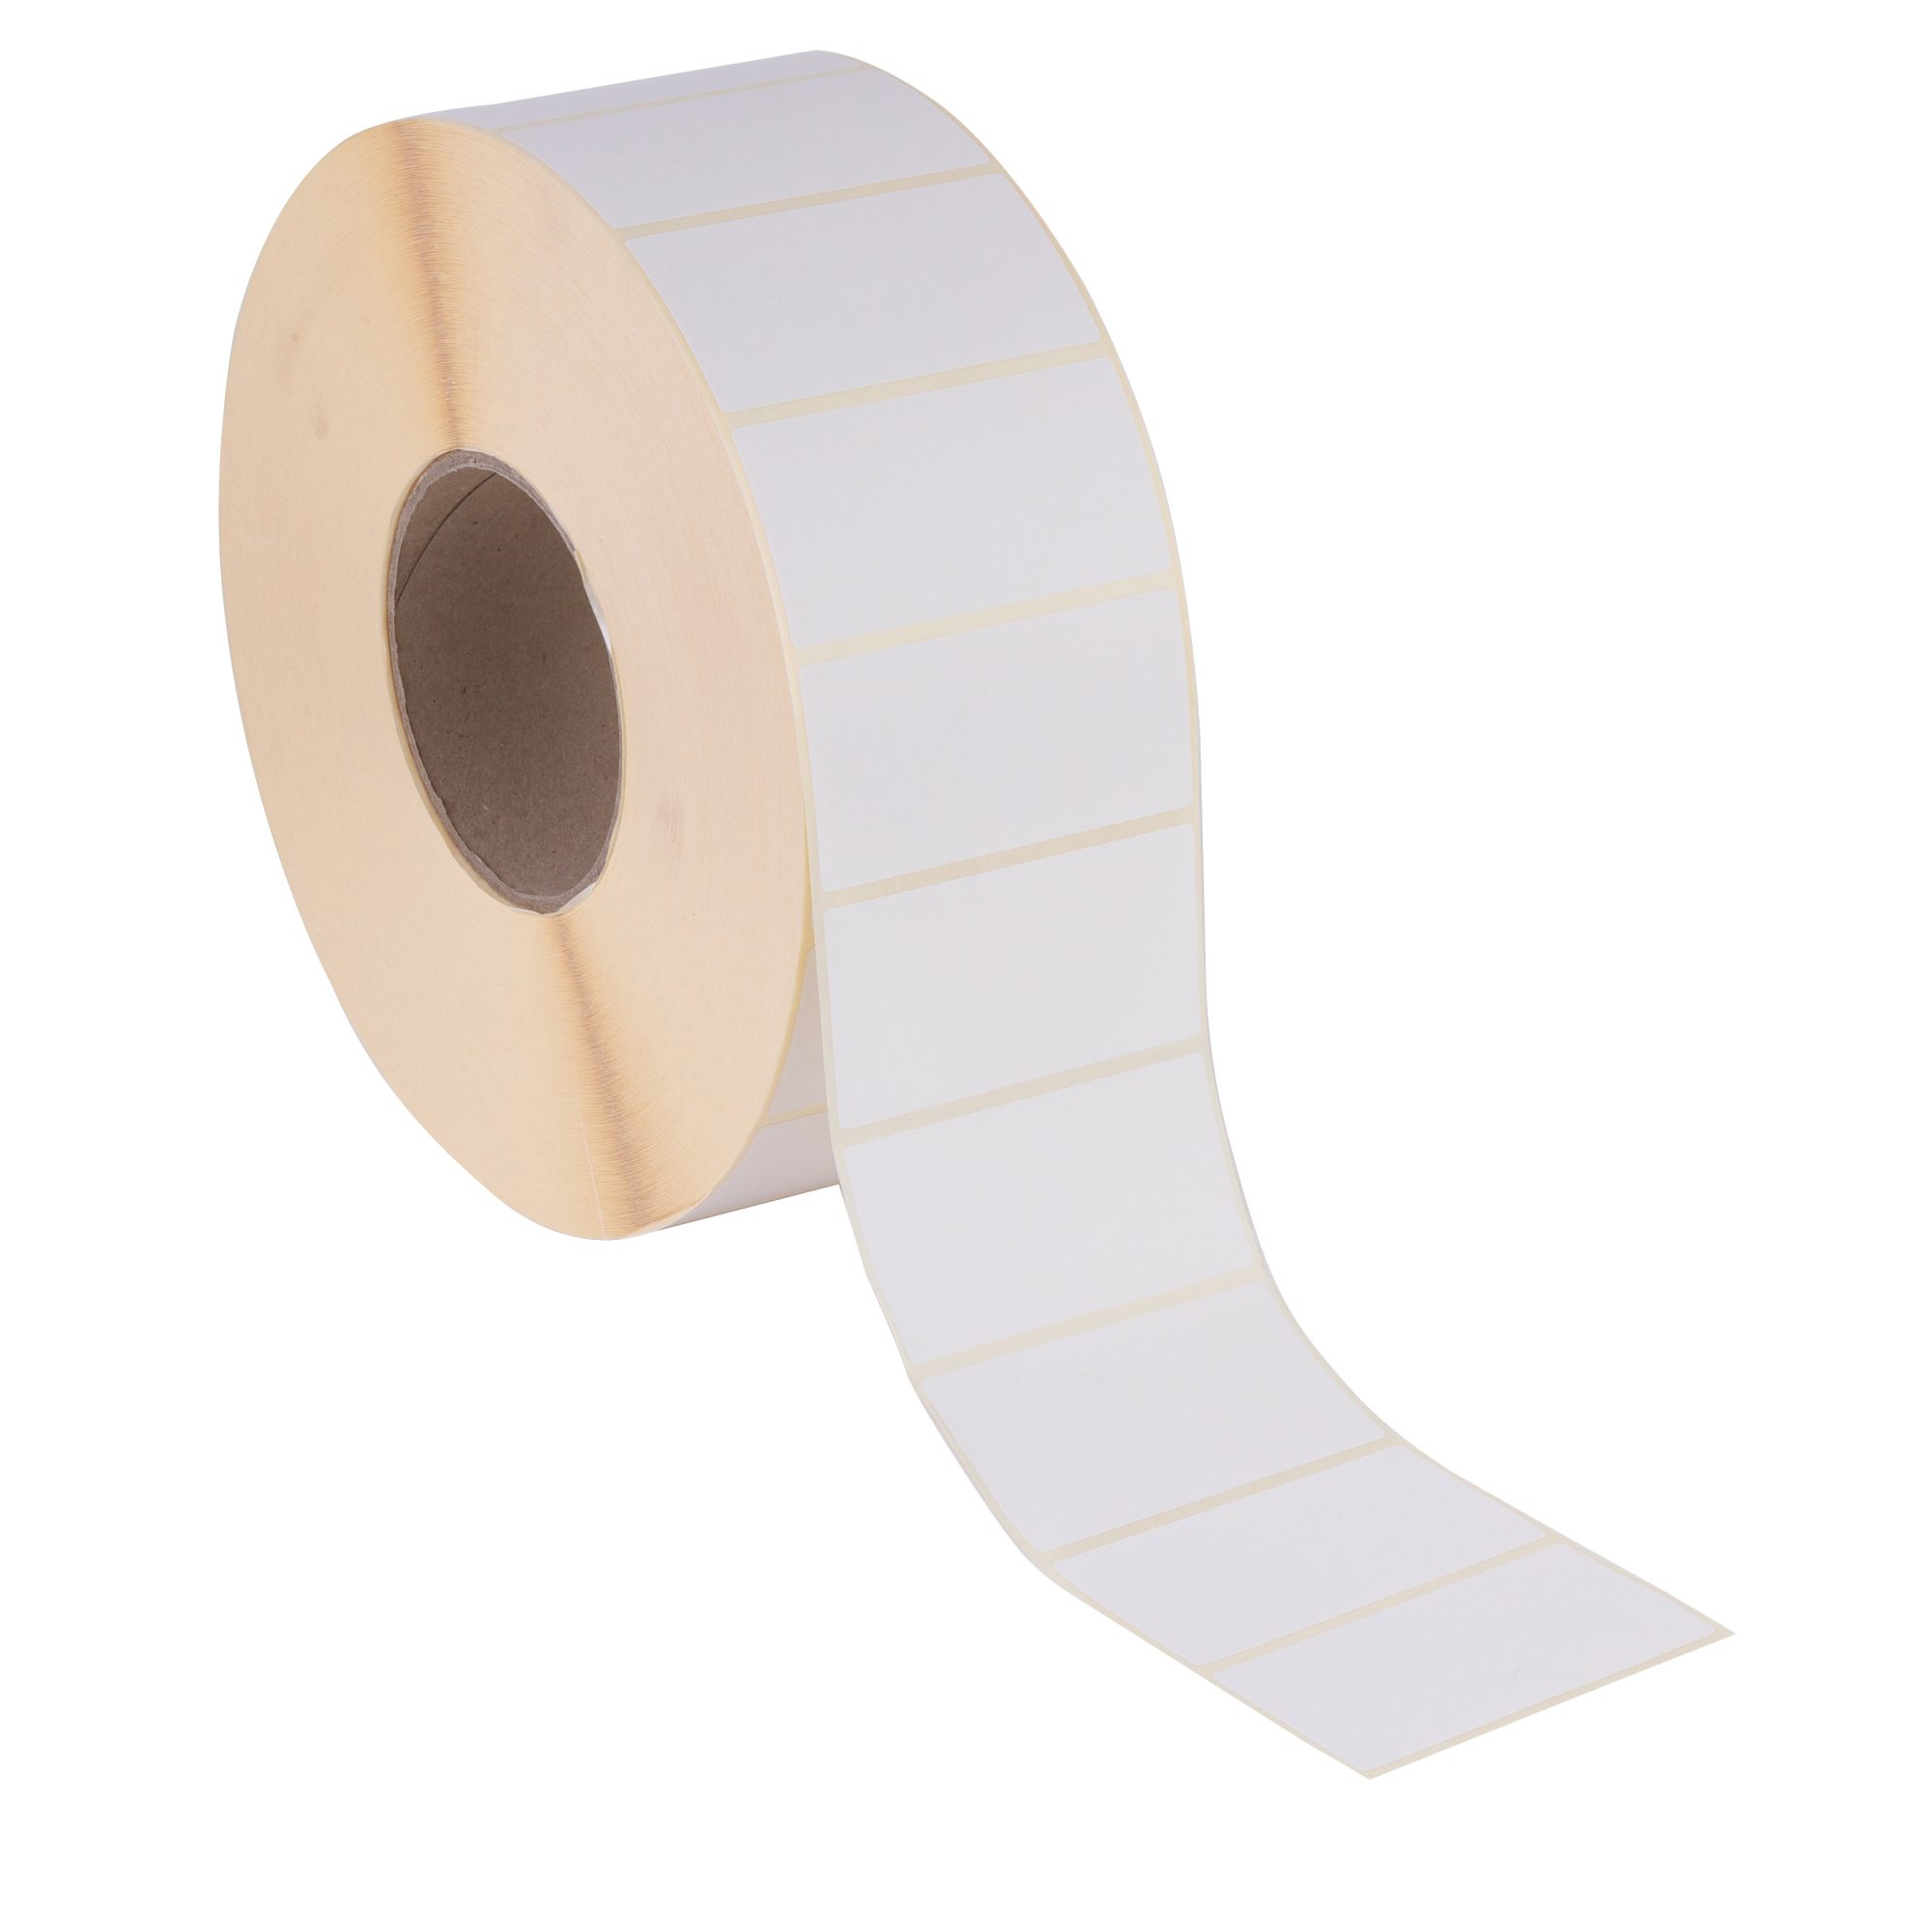 75 x 25mm White Peelable Label (2000/Roll)